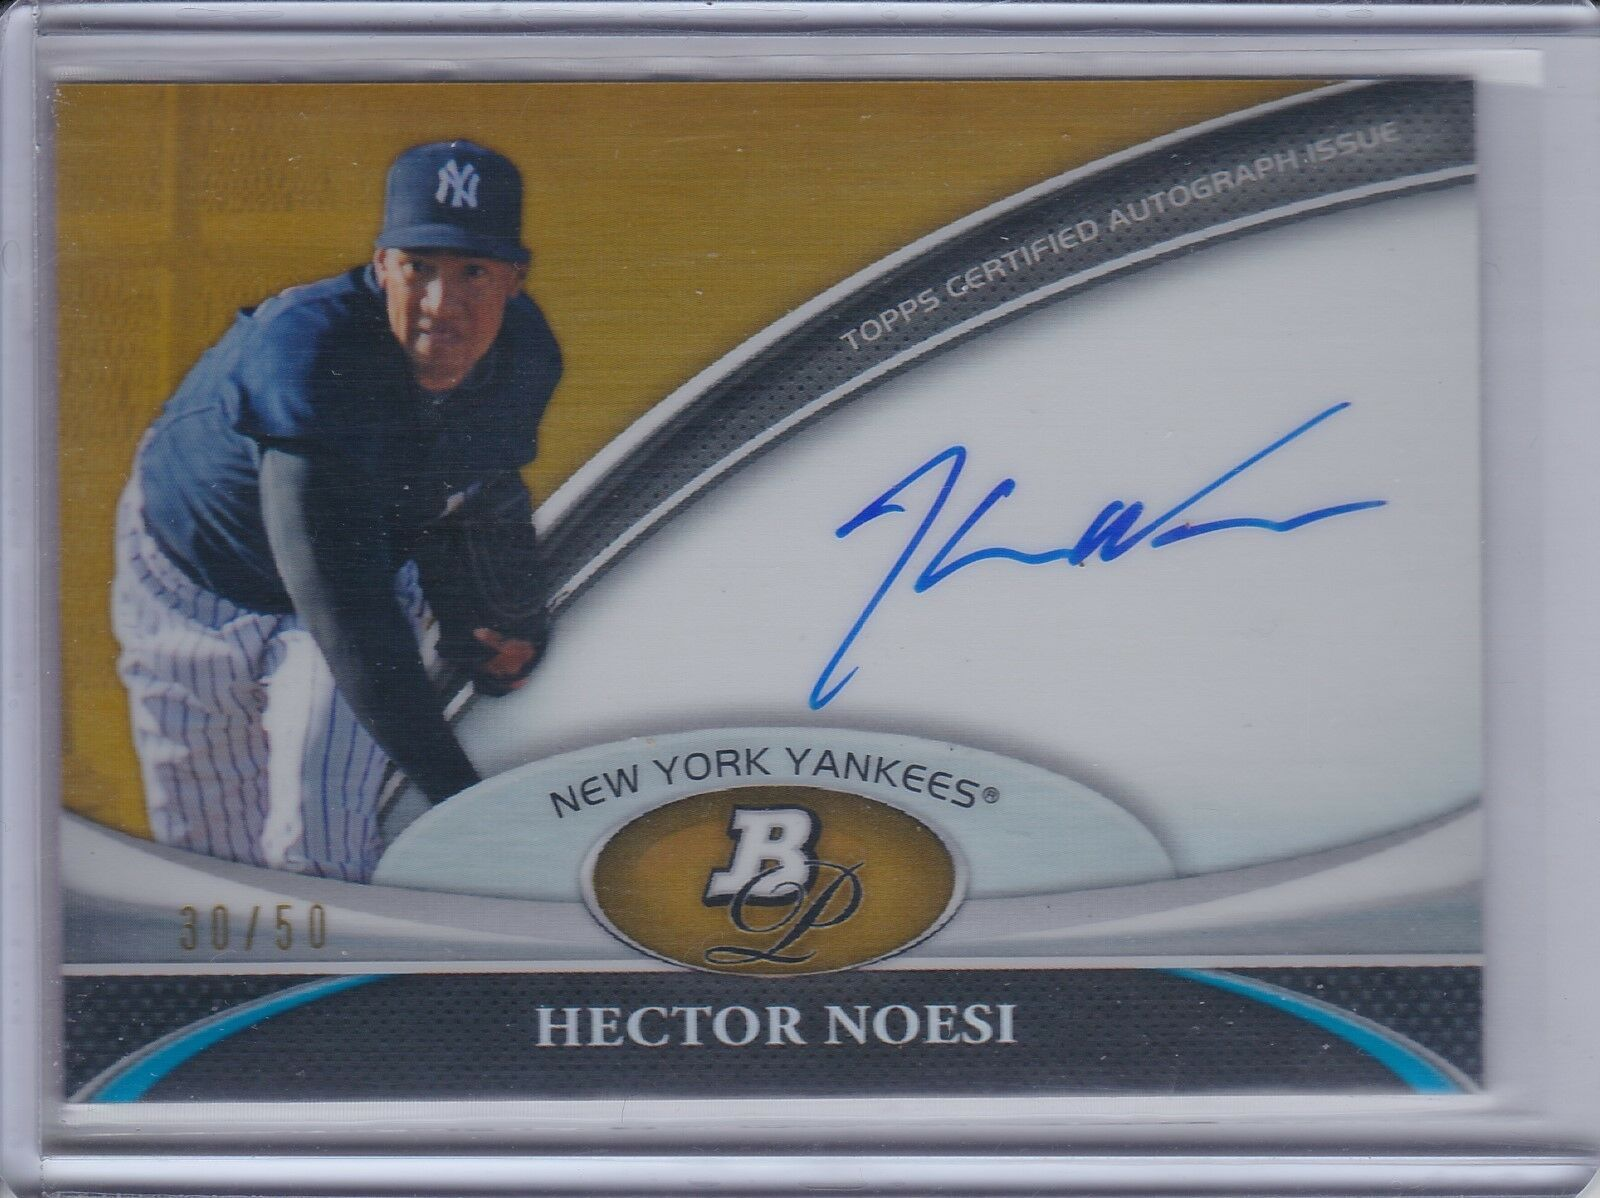 Primary image for HECTOR NOESI 2011 Bowman Platinum Prospect Autograph Gold Refractor #/50 (C3526)